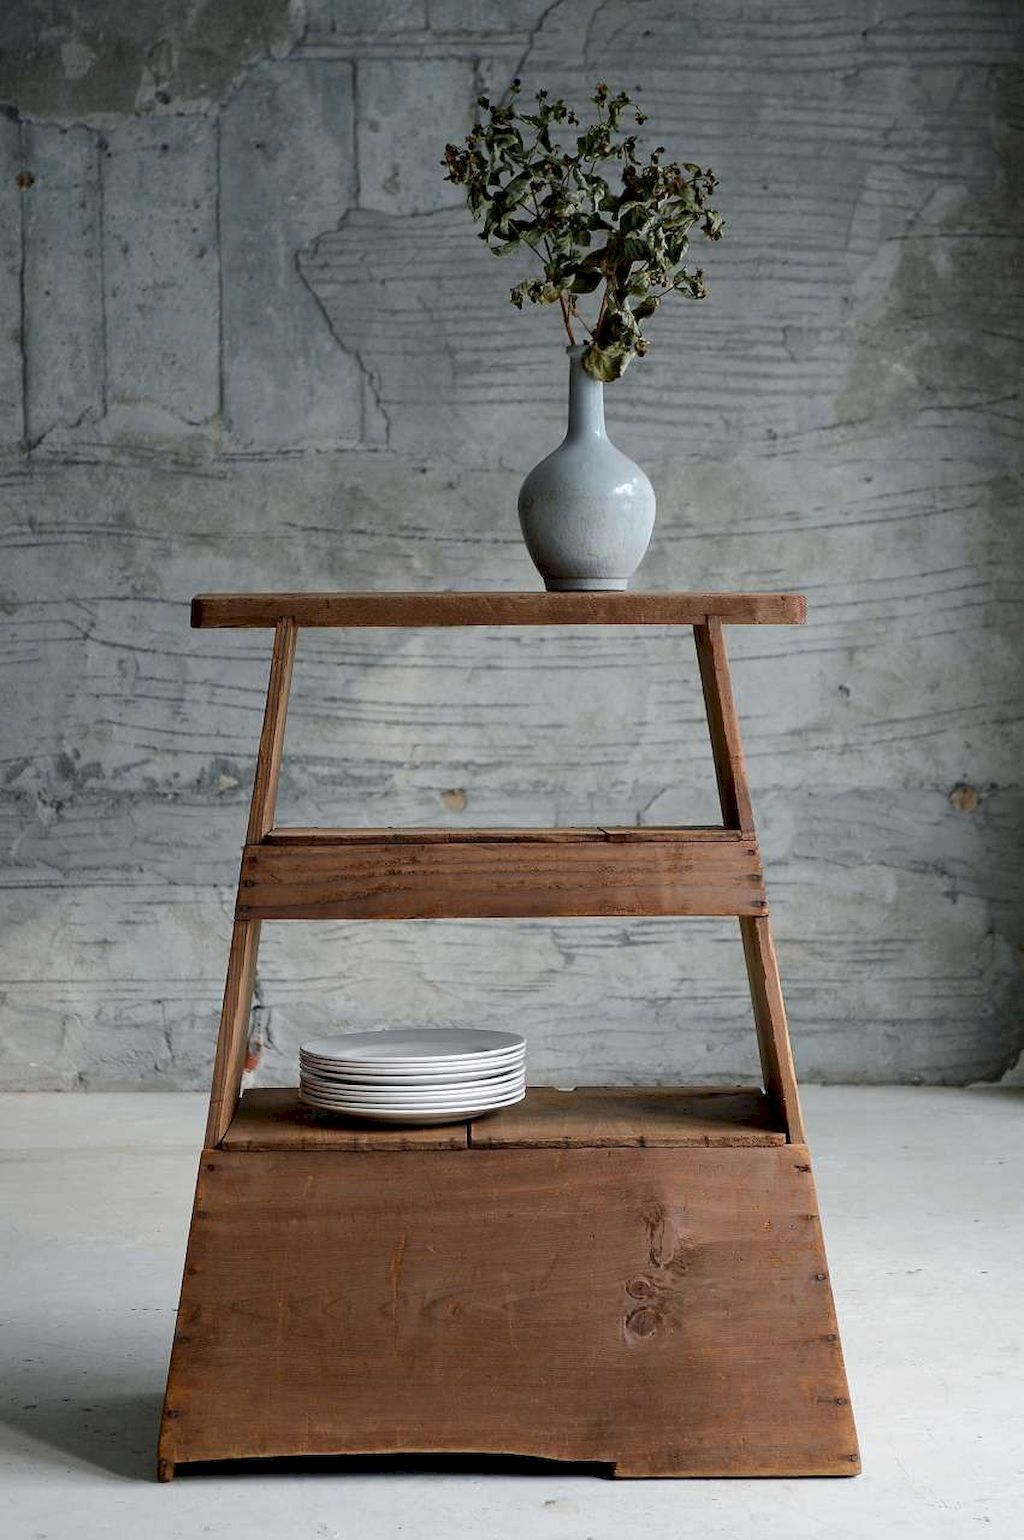 Minimalist Wood Furniture with Stylish Features | Elonahome.com